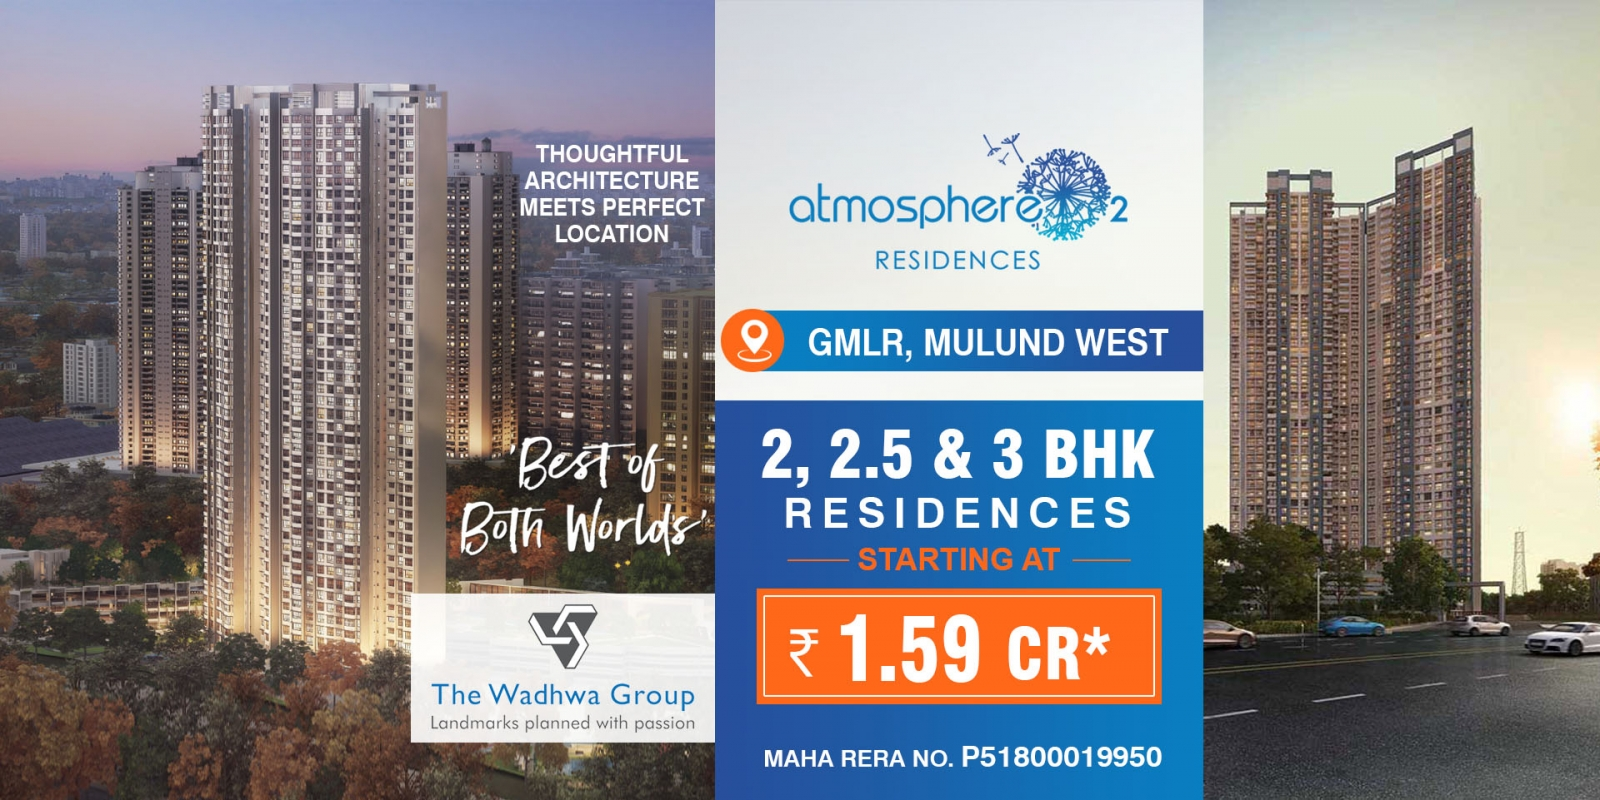 Wadhwa Atmosphere O2 Mulund West